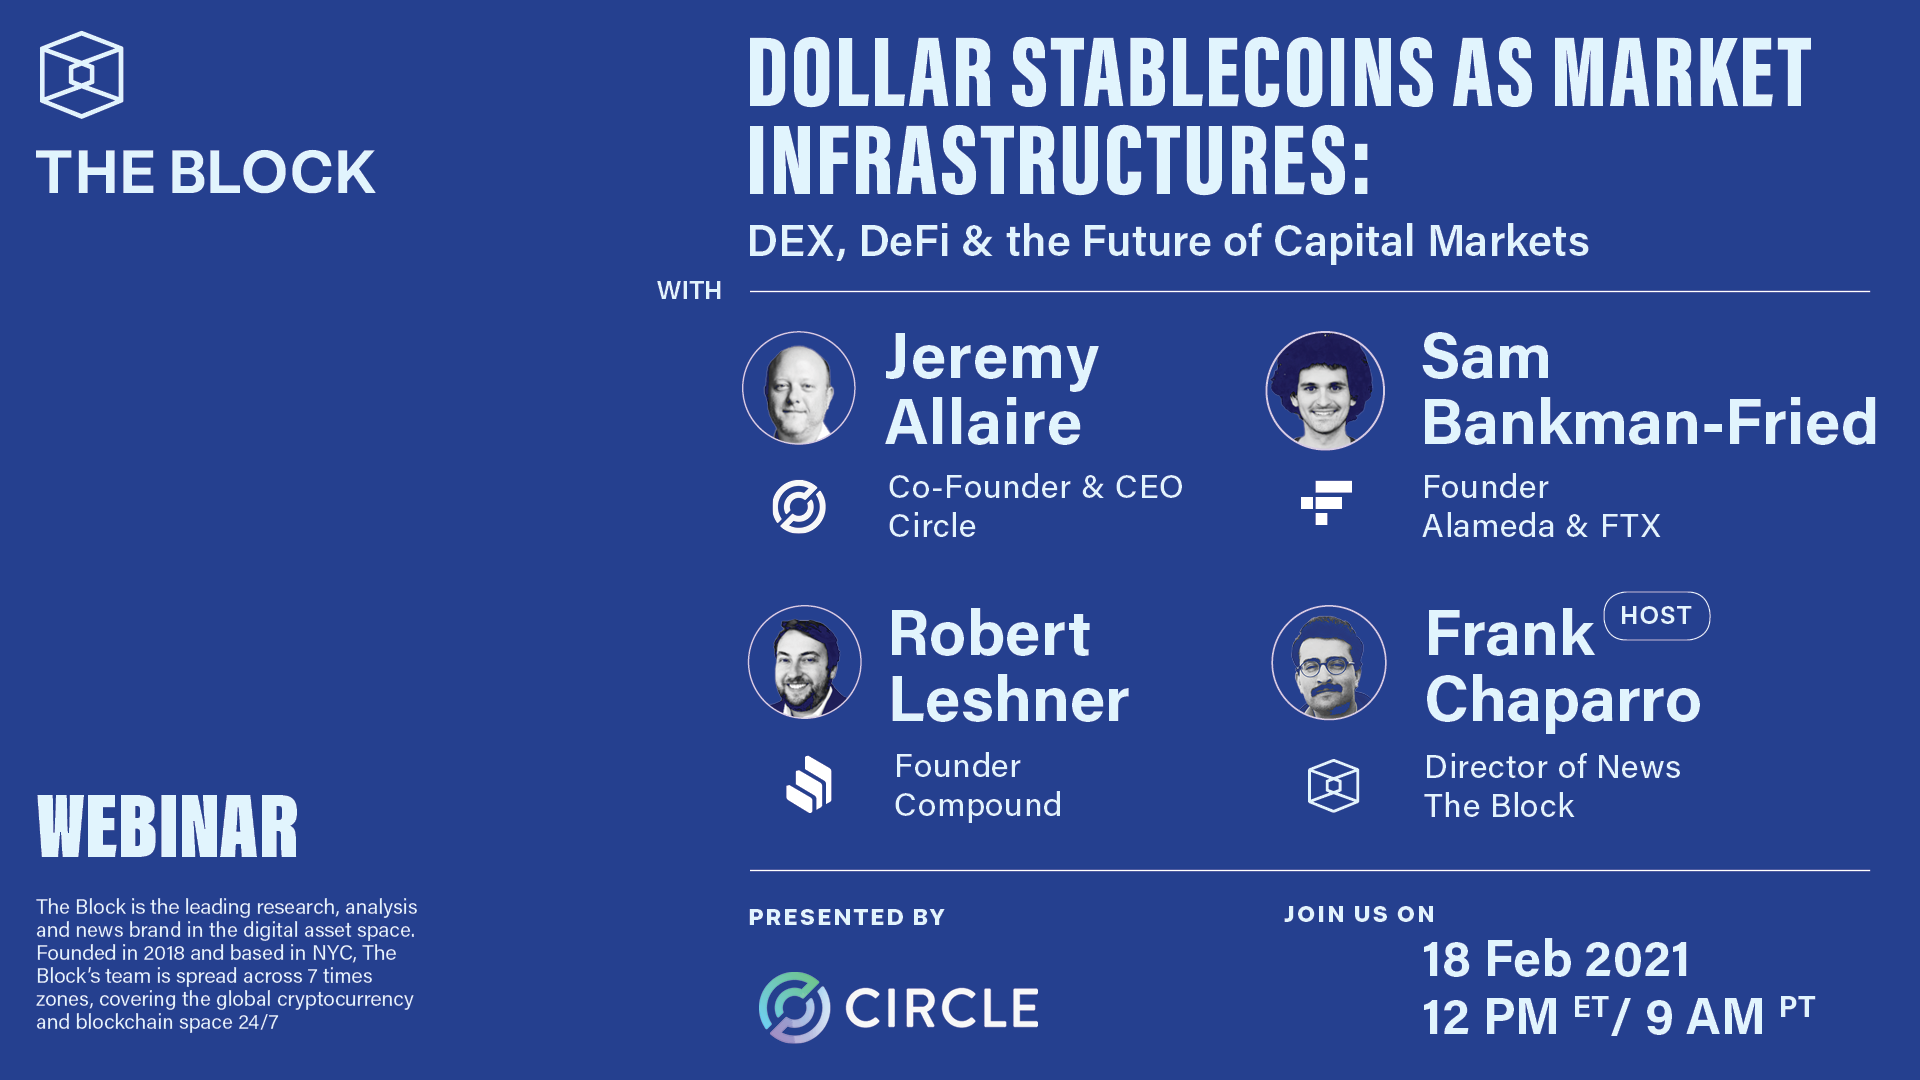 Dollar Stablecoins as Market Infrastructure: DEX, DeFi & the Future of Capital Markets   Full Video